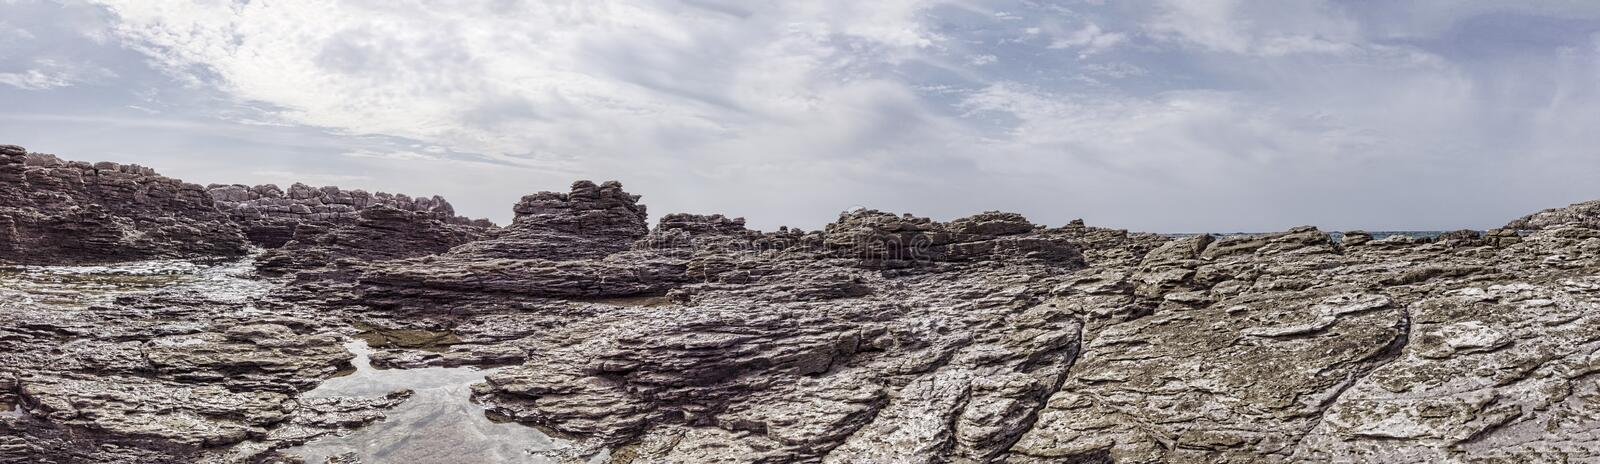 Panoramic 180 degree view of wilderness pristine with ancient geological rocks layers formation carved by wind.  stock photos